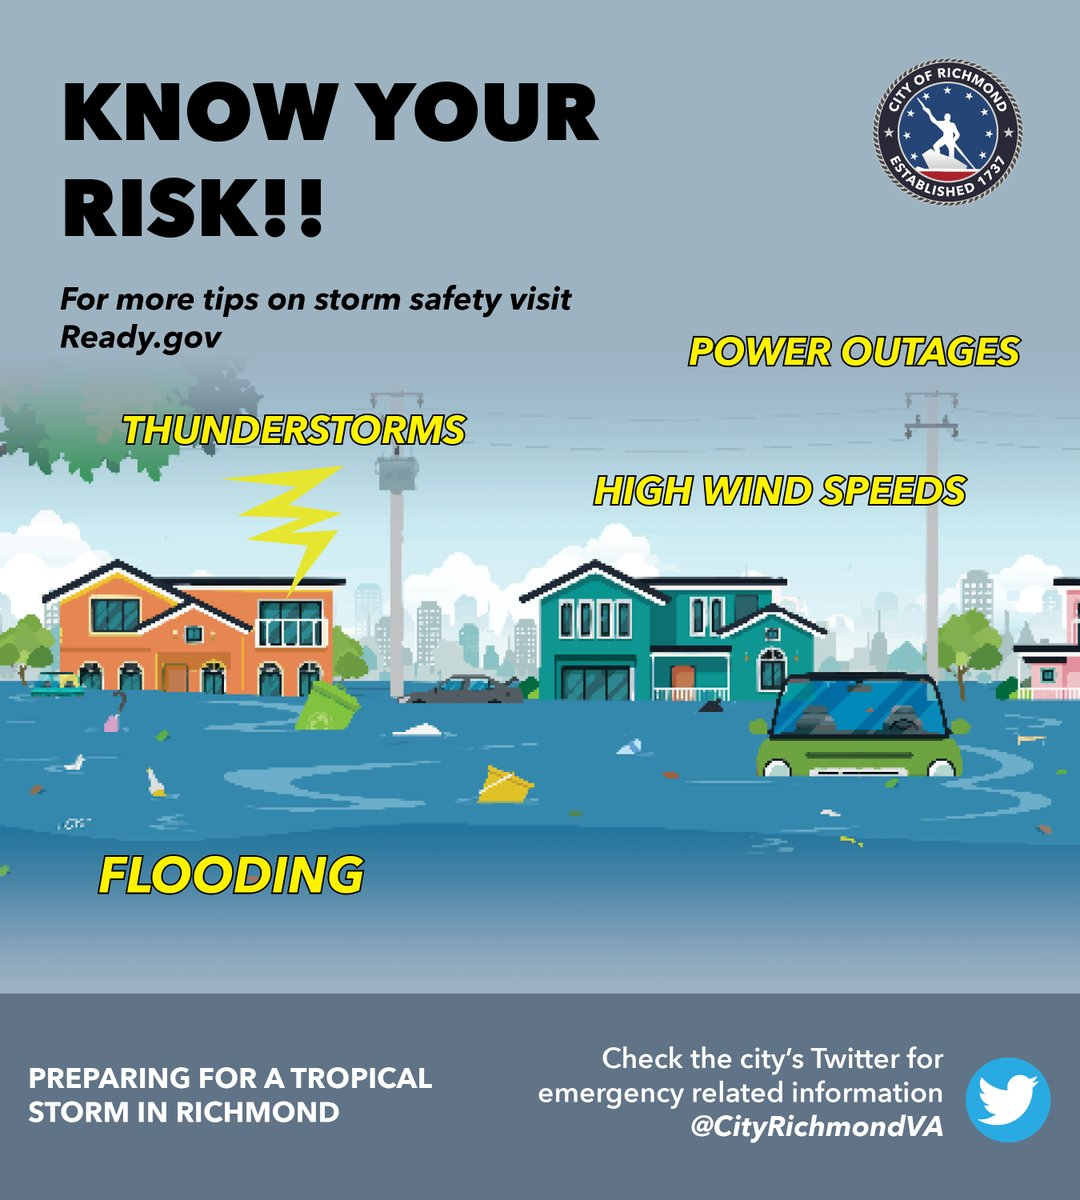 Know your risks. Be prepared.  The City of Richmond has activated its emergency operations center and will be monitoring the tropical storm. For more information, check out this briefing the mayor and emergency personnel provided earlier today: